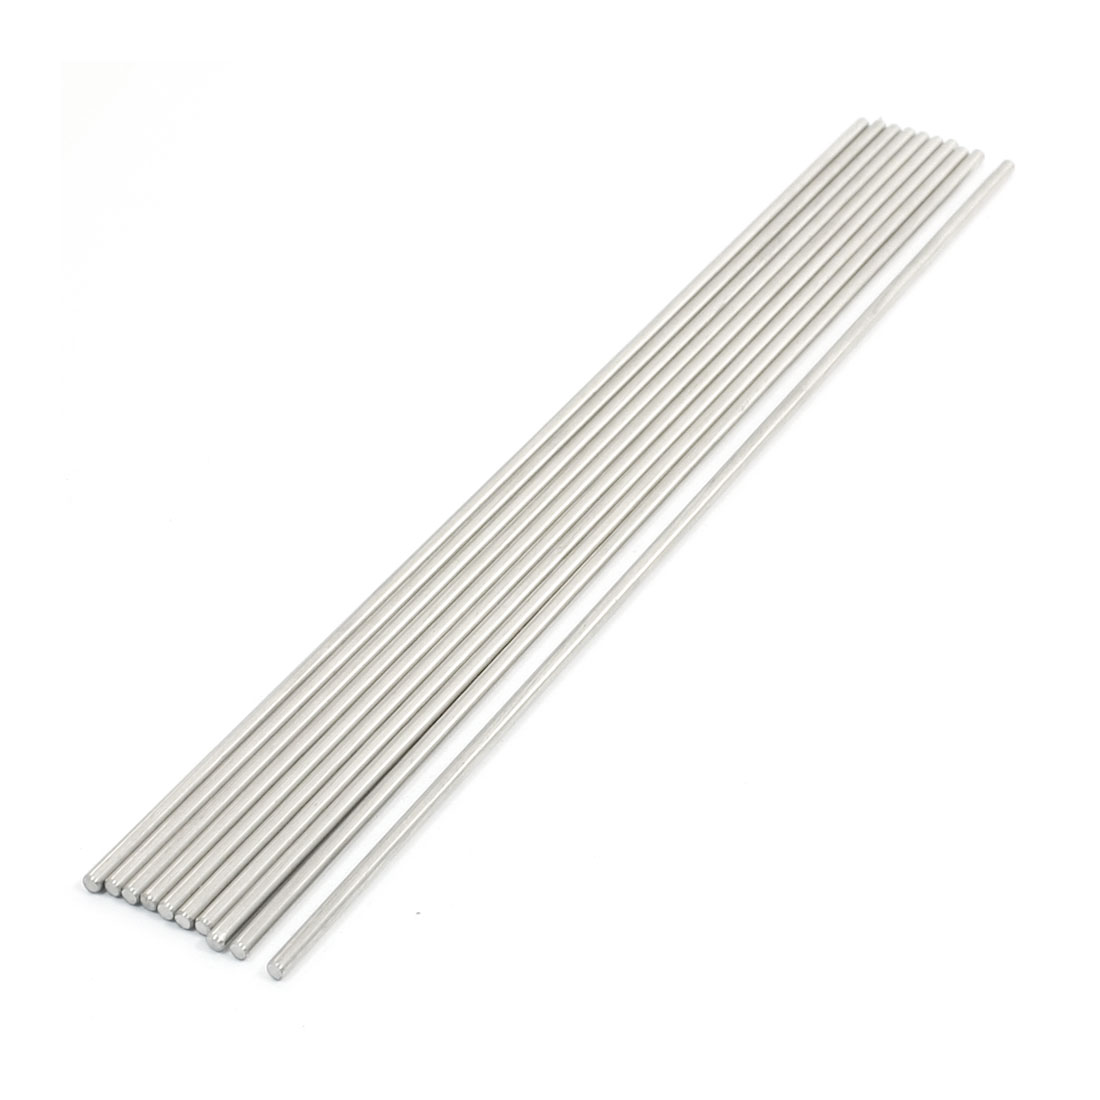 10Pcs Stainless Steel 200mm x 2.5mm Round Rod Stock for RC Airplane Model